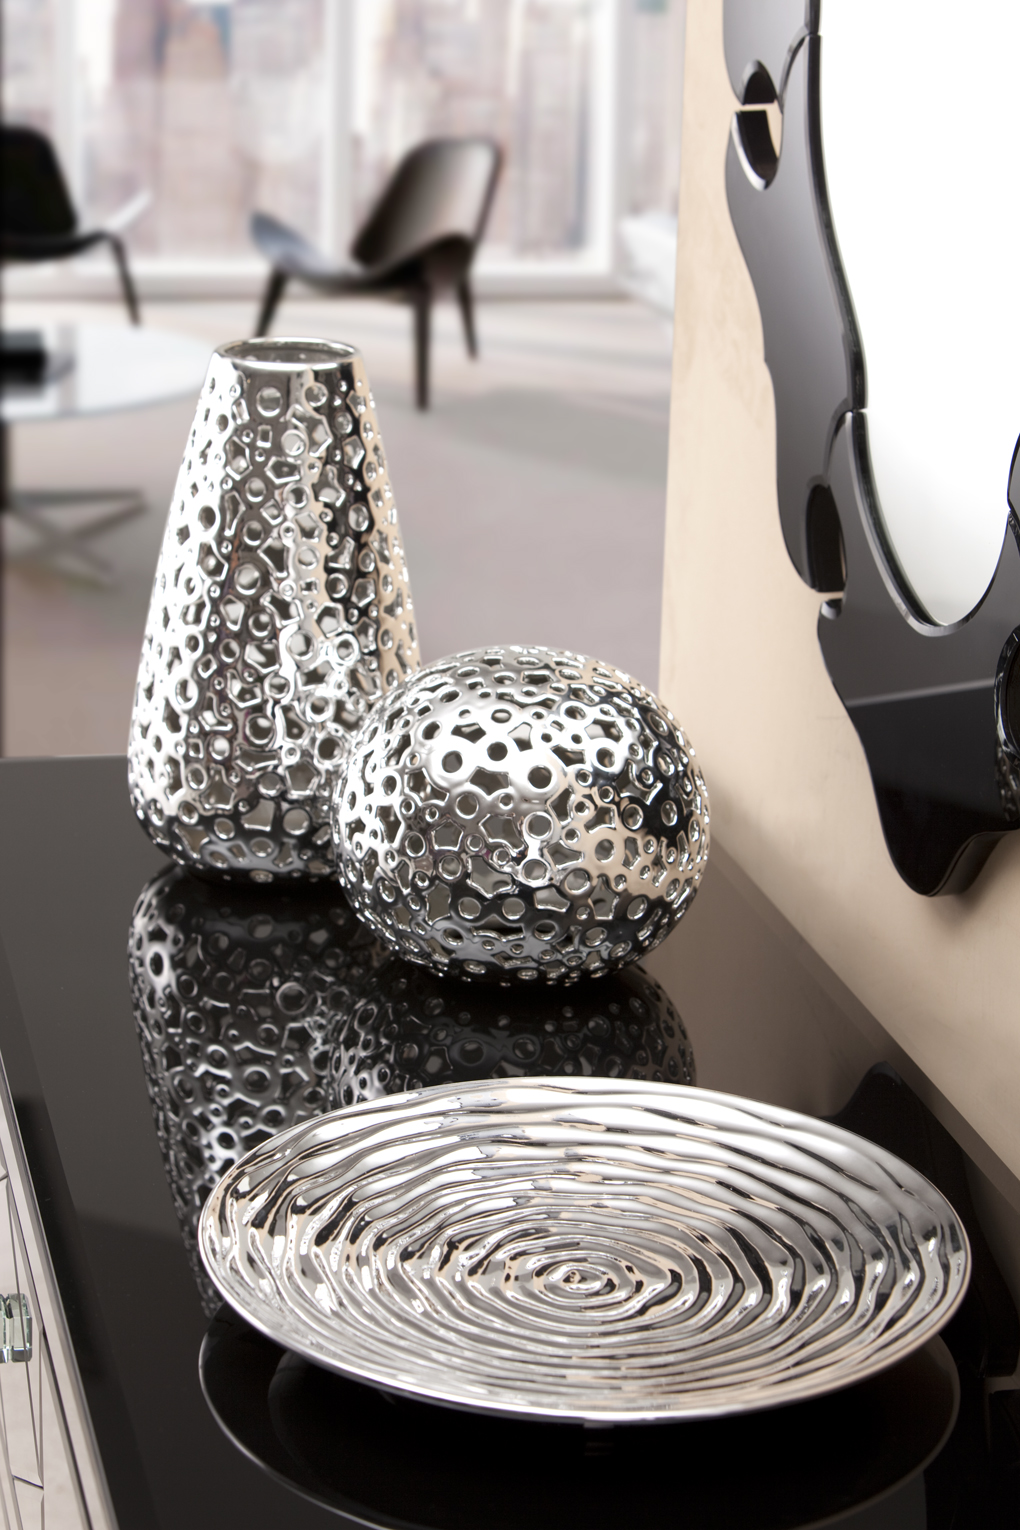 Design inspiration decorative accent pieces real life for House of decorative accessories